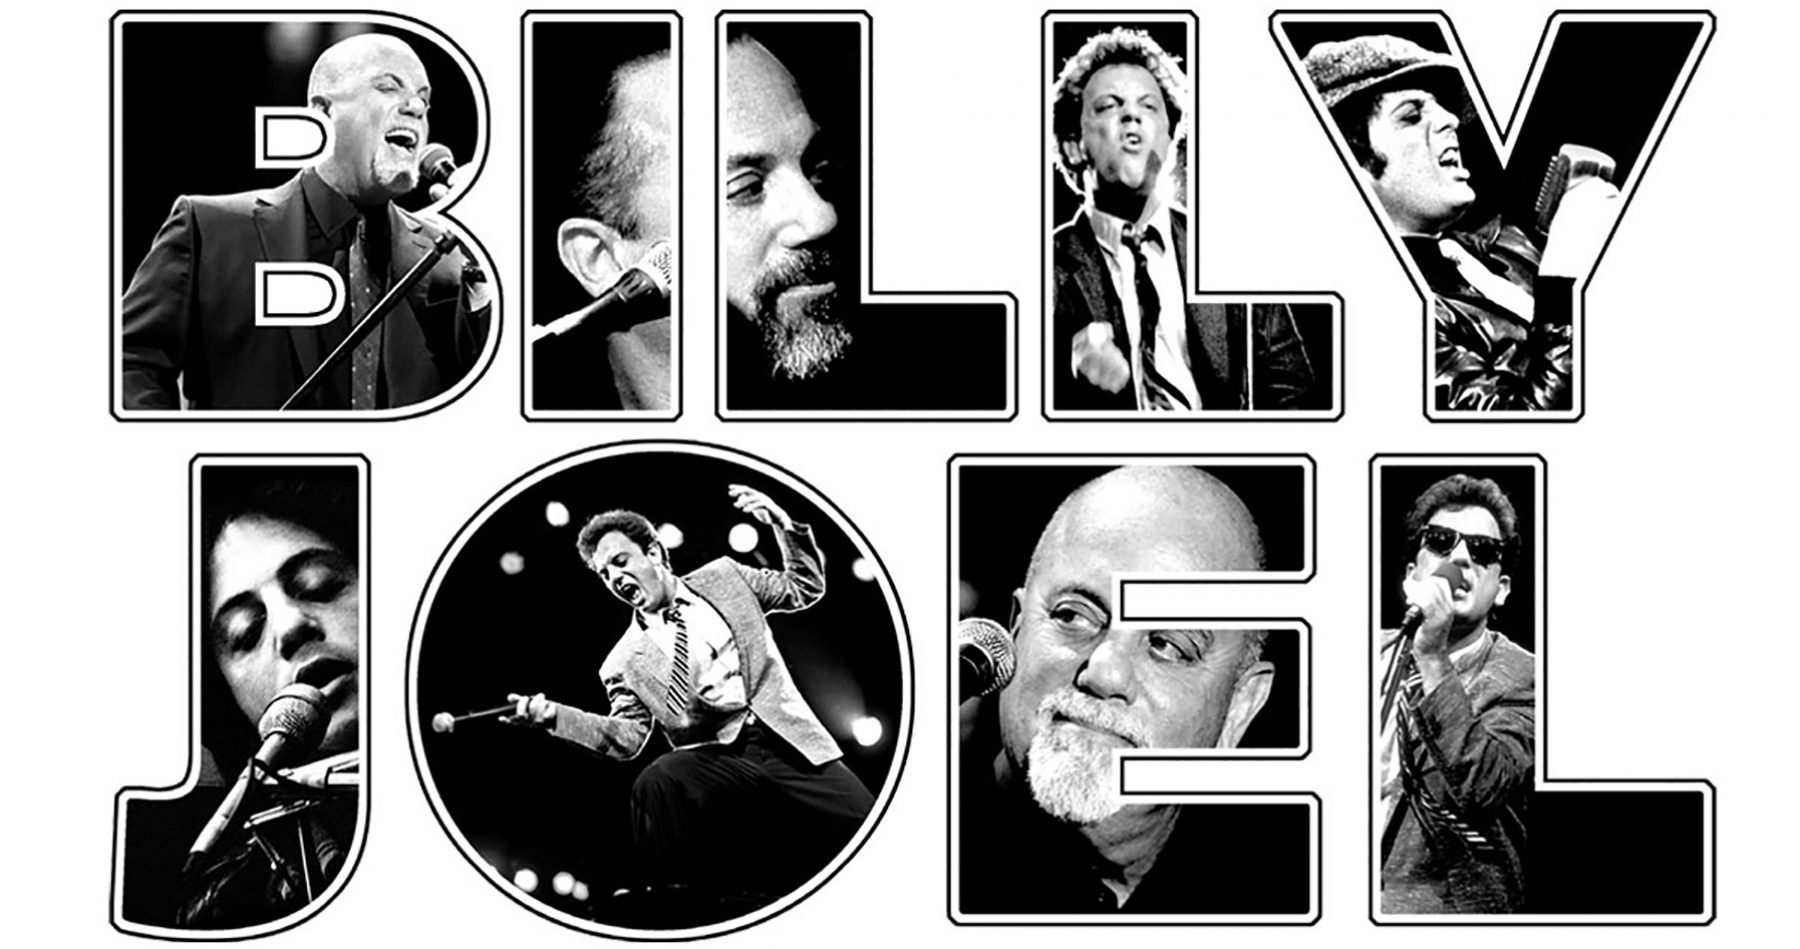 Billy Joel In Concert Friday January 11, 2019 Amway Center Orlando, FL